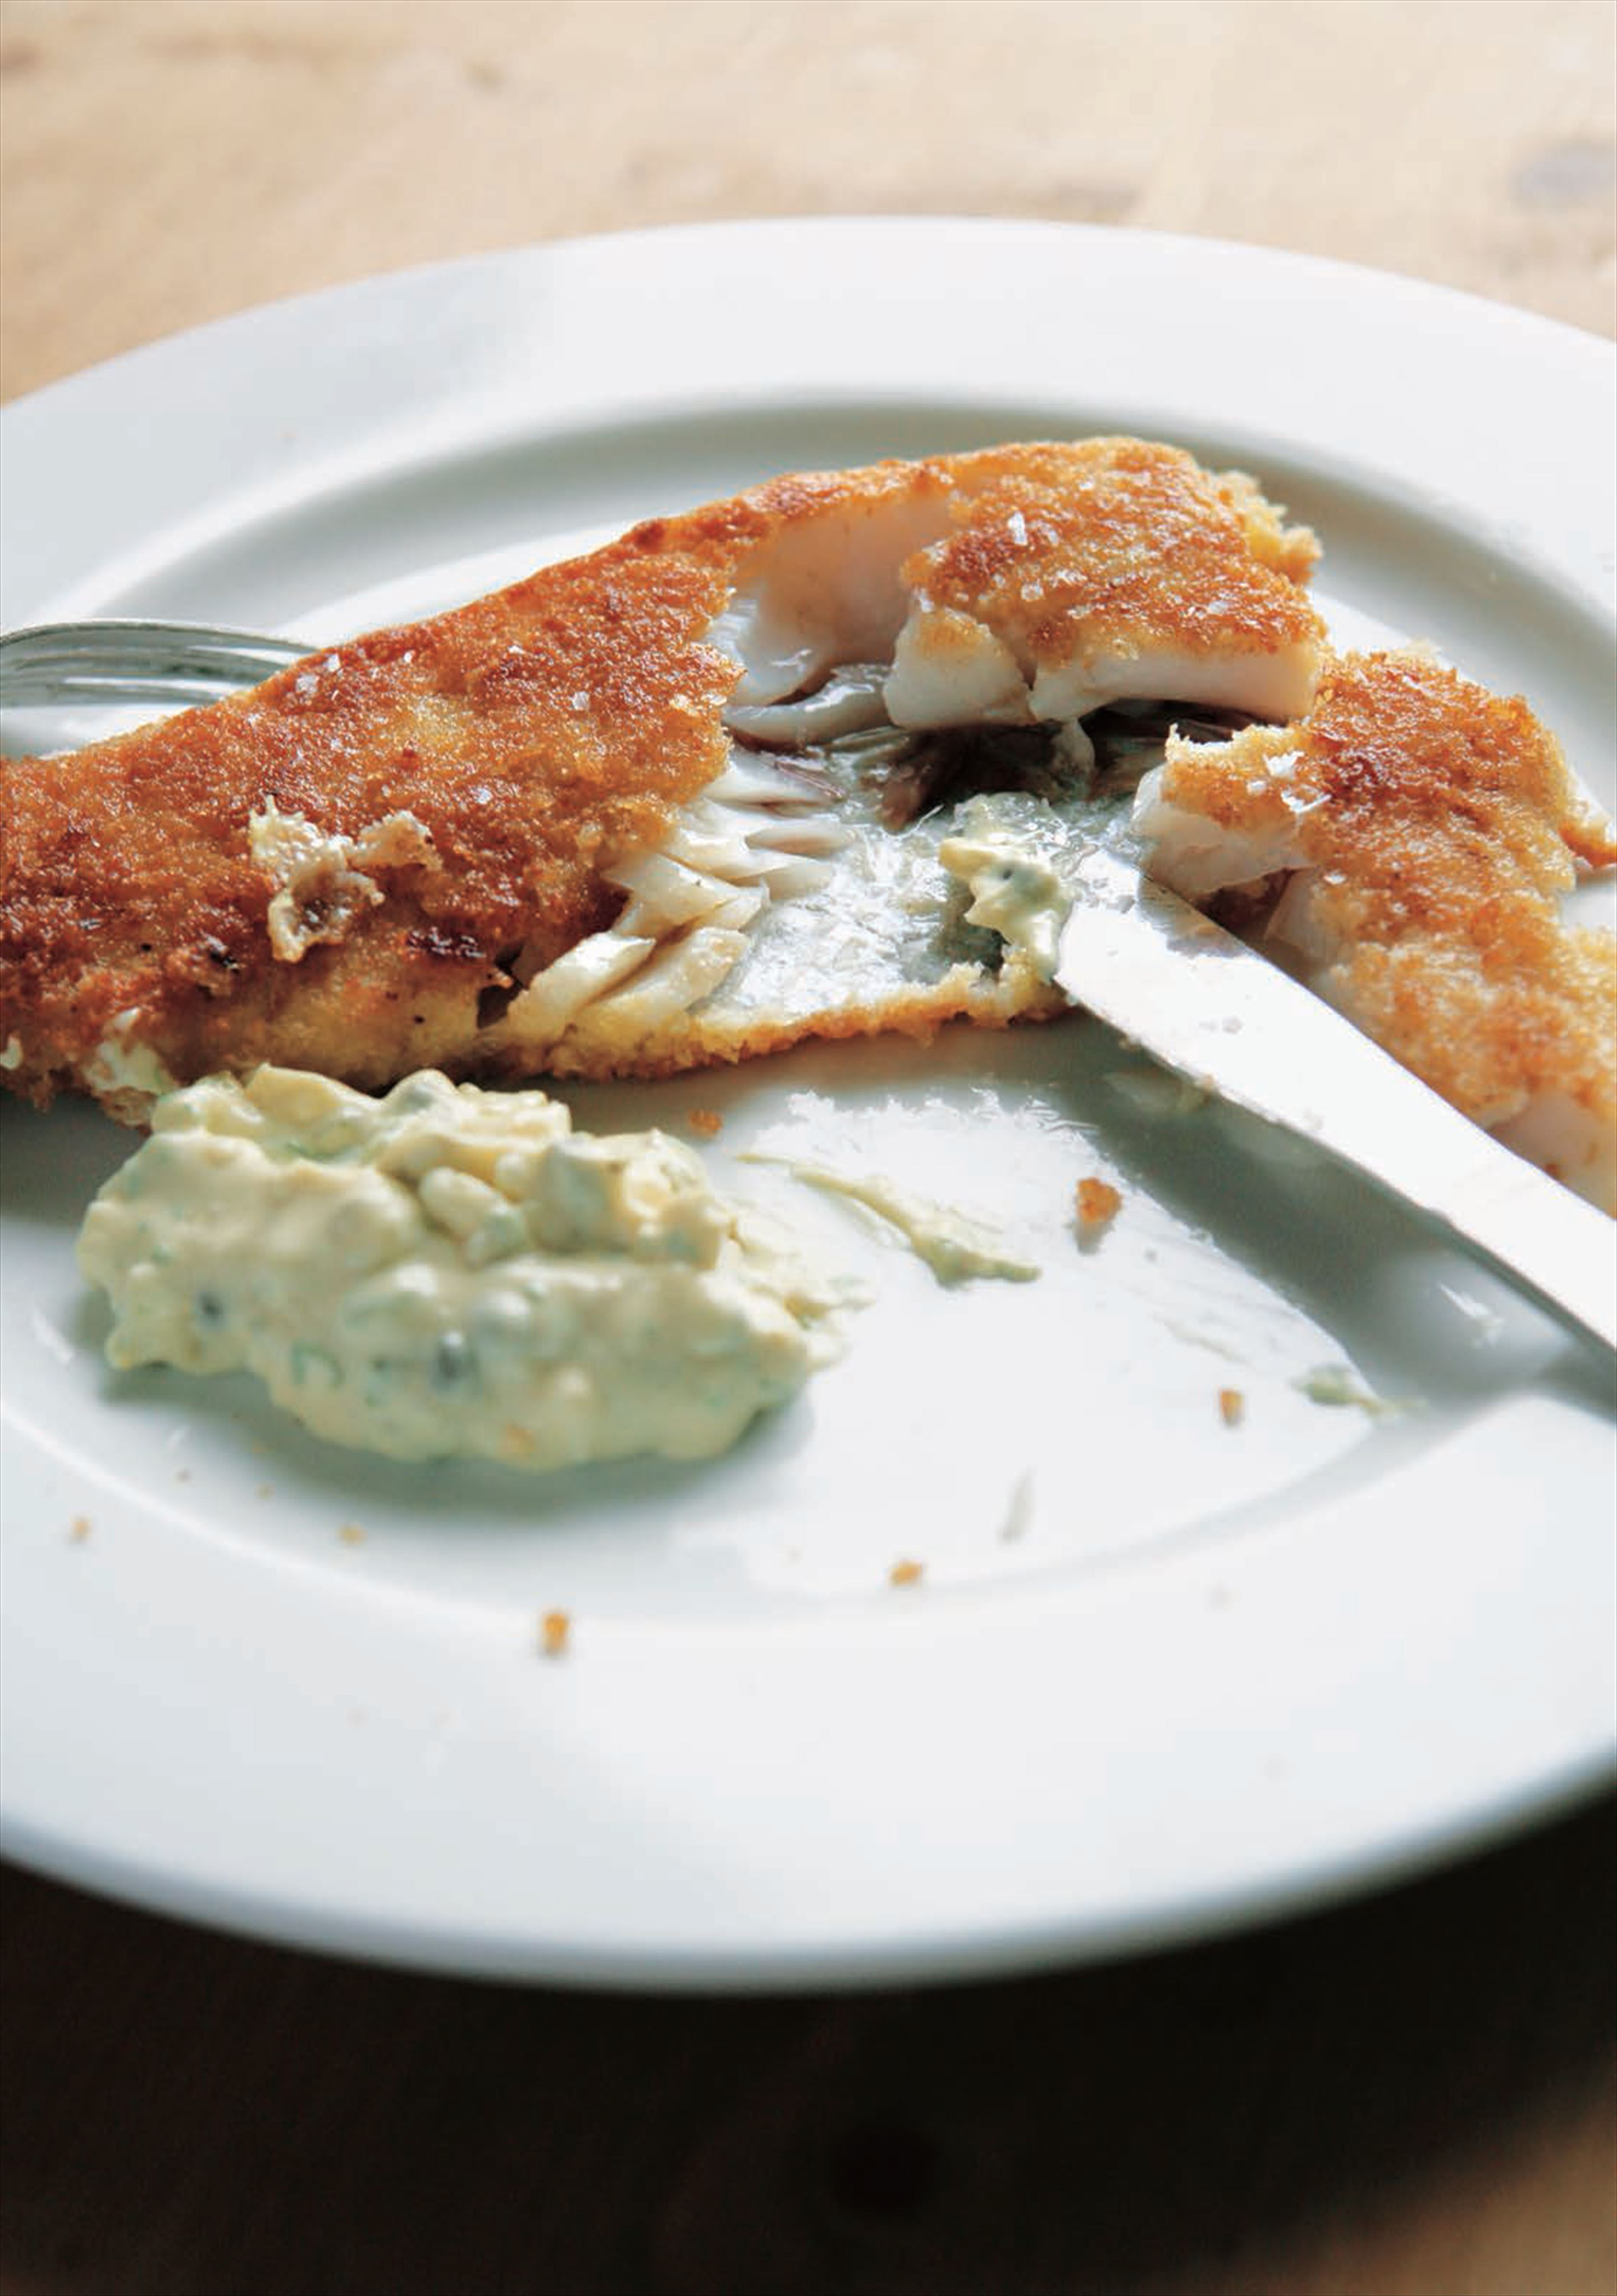 Crumbed plaice fillets with tartare sauce